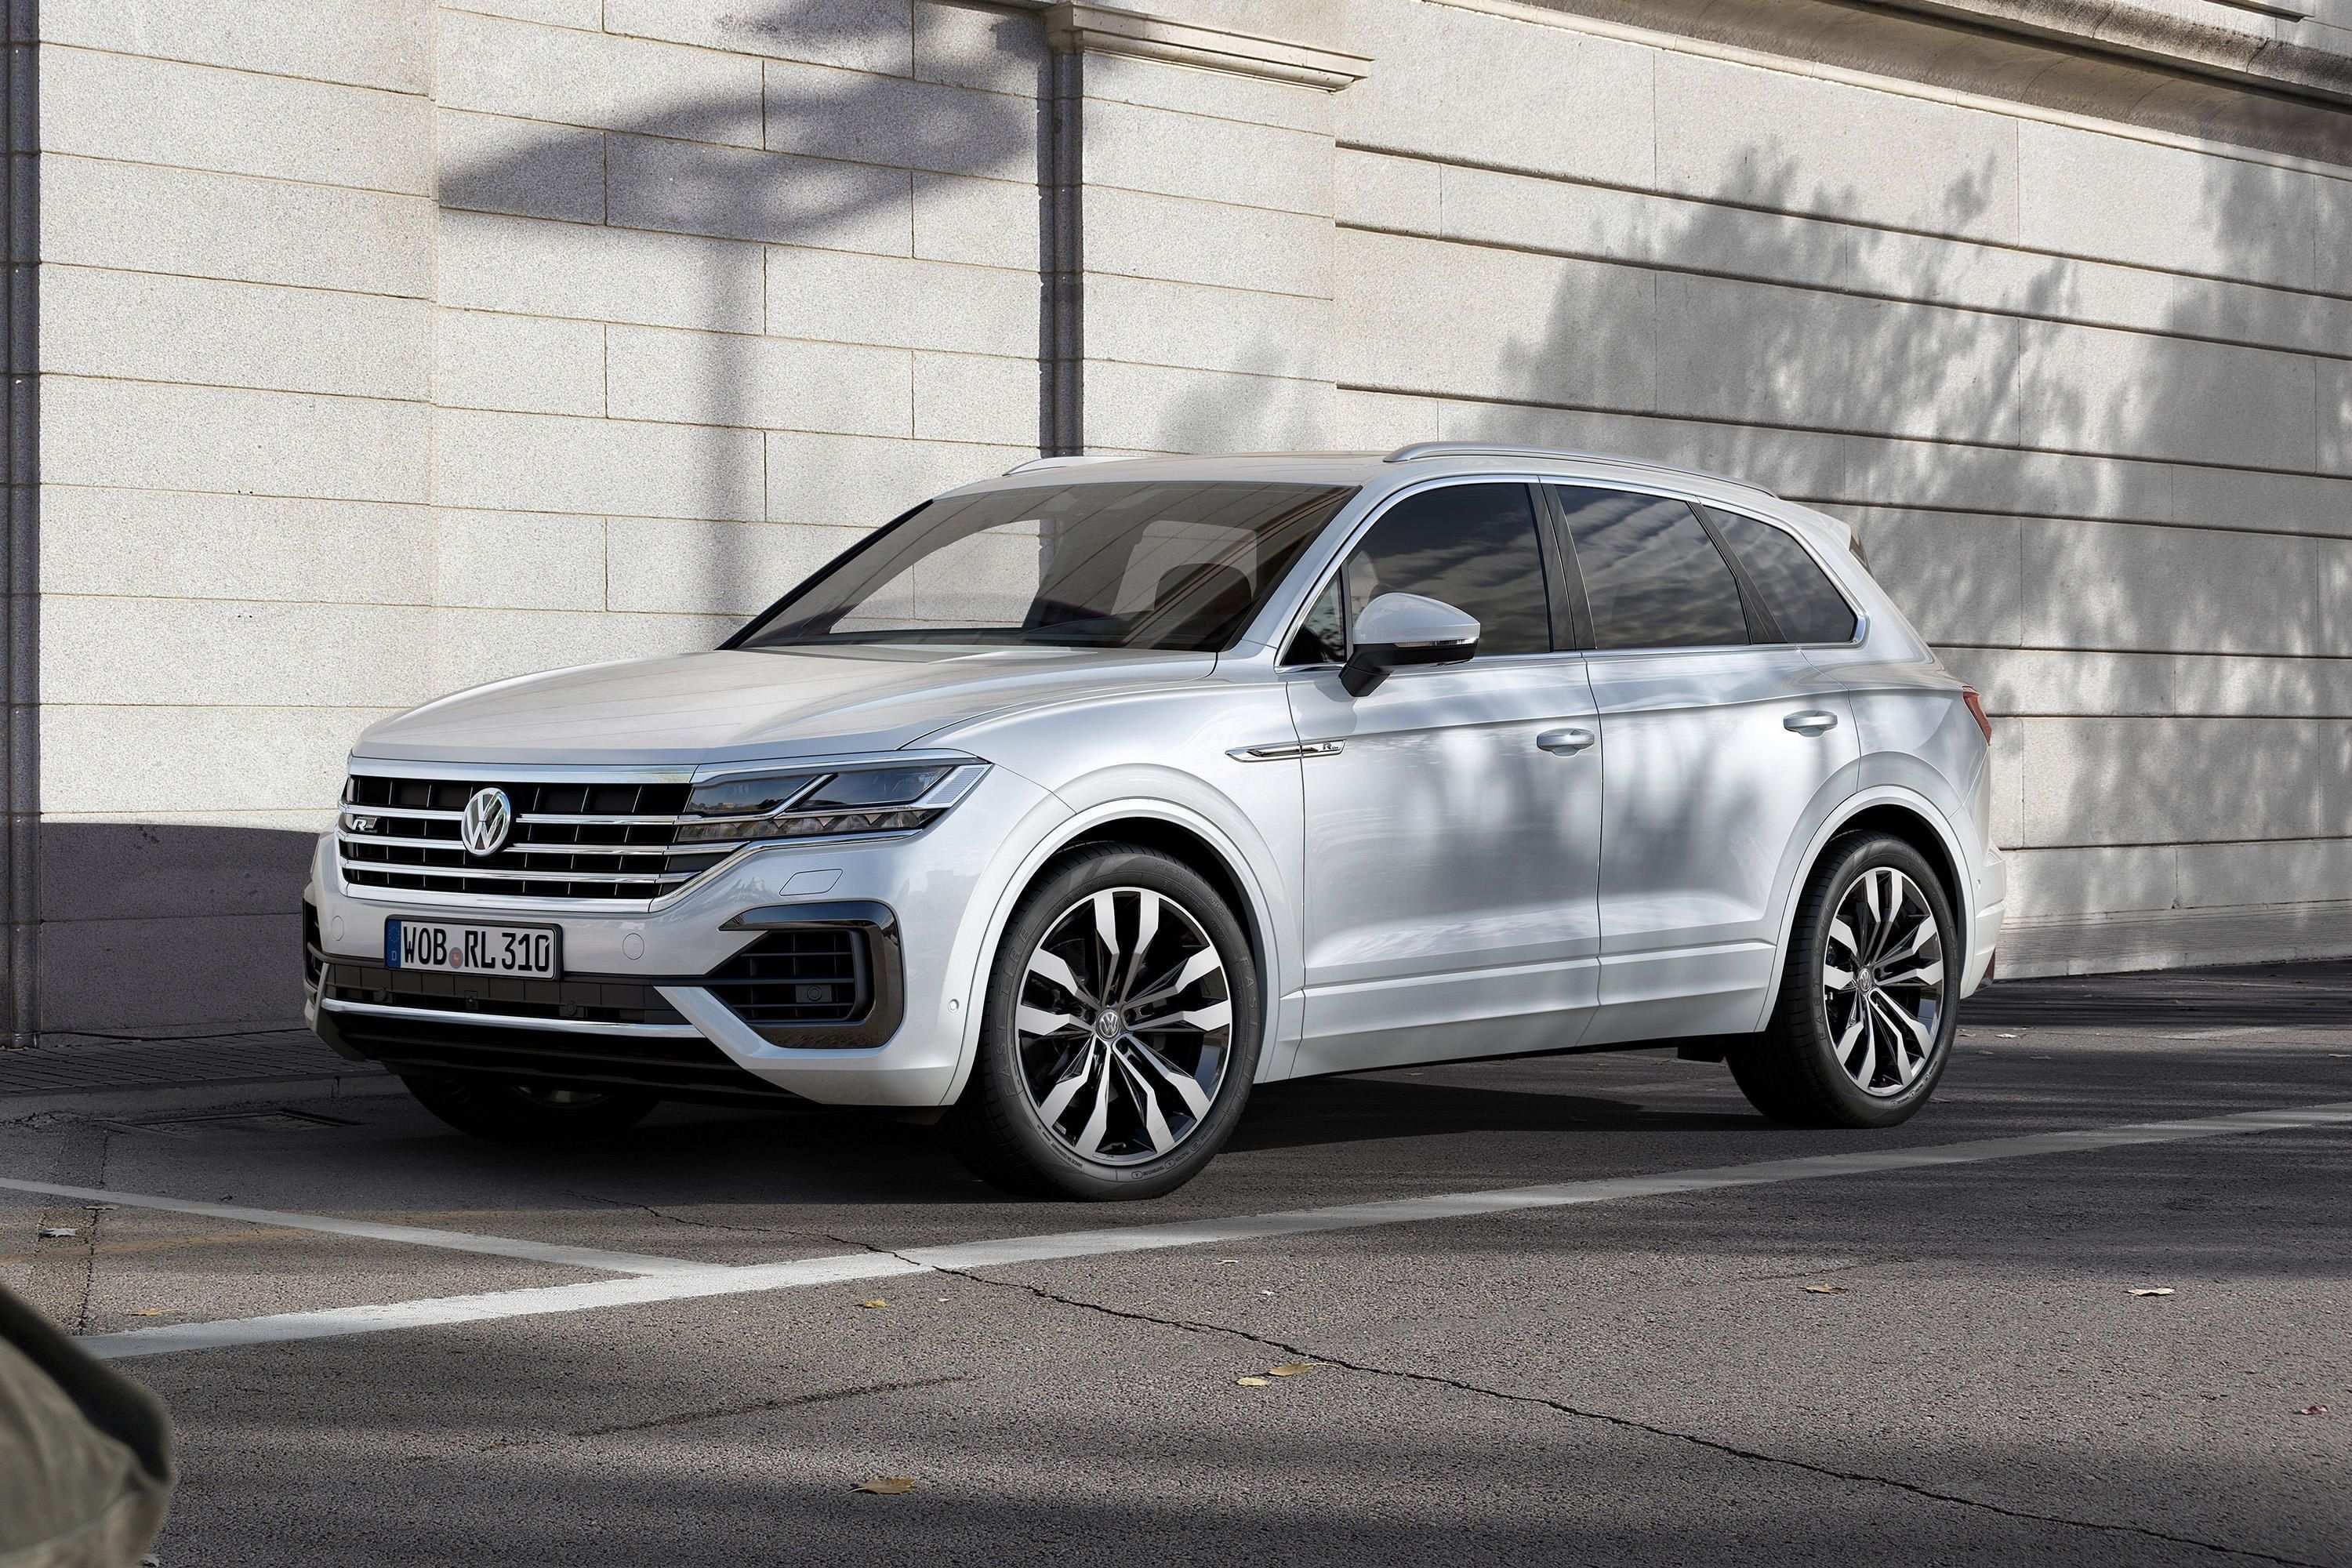 96 The 2019 Volkswagen Usa Images by 2019 Volkswagen Usa